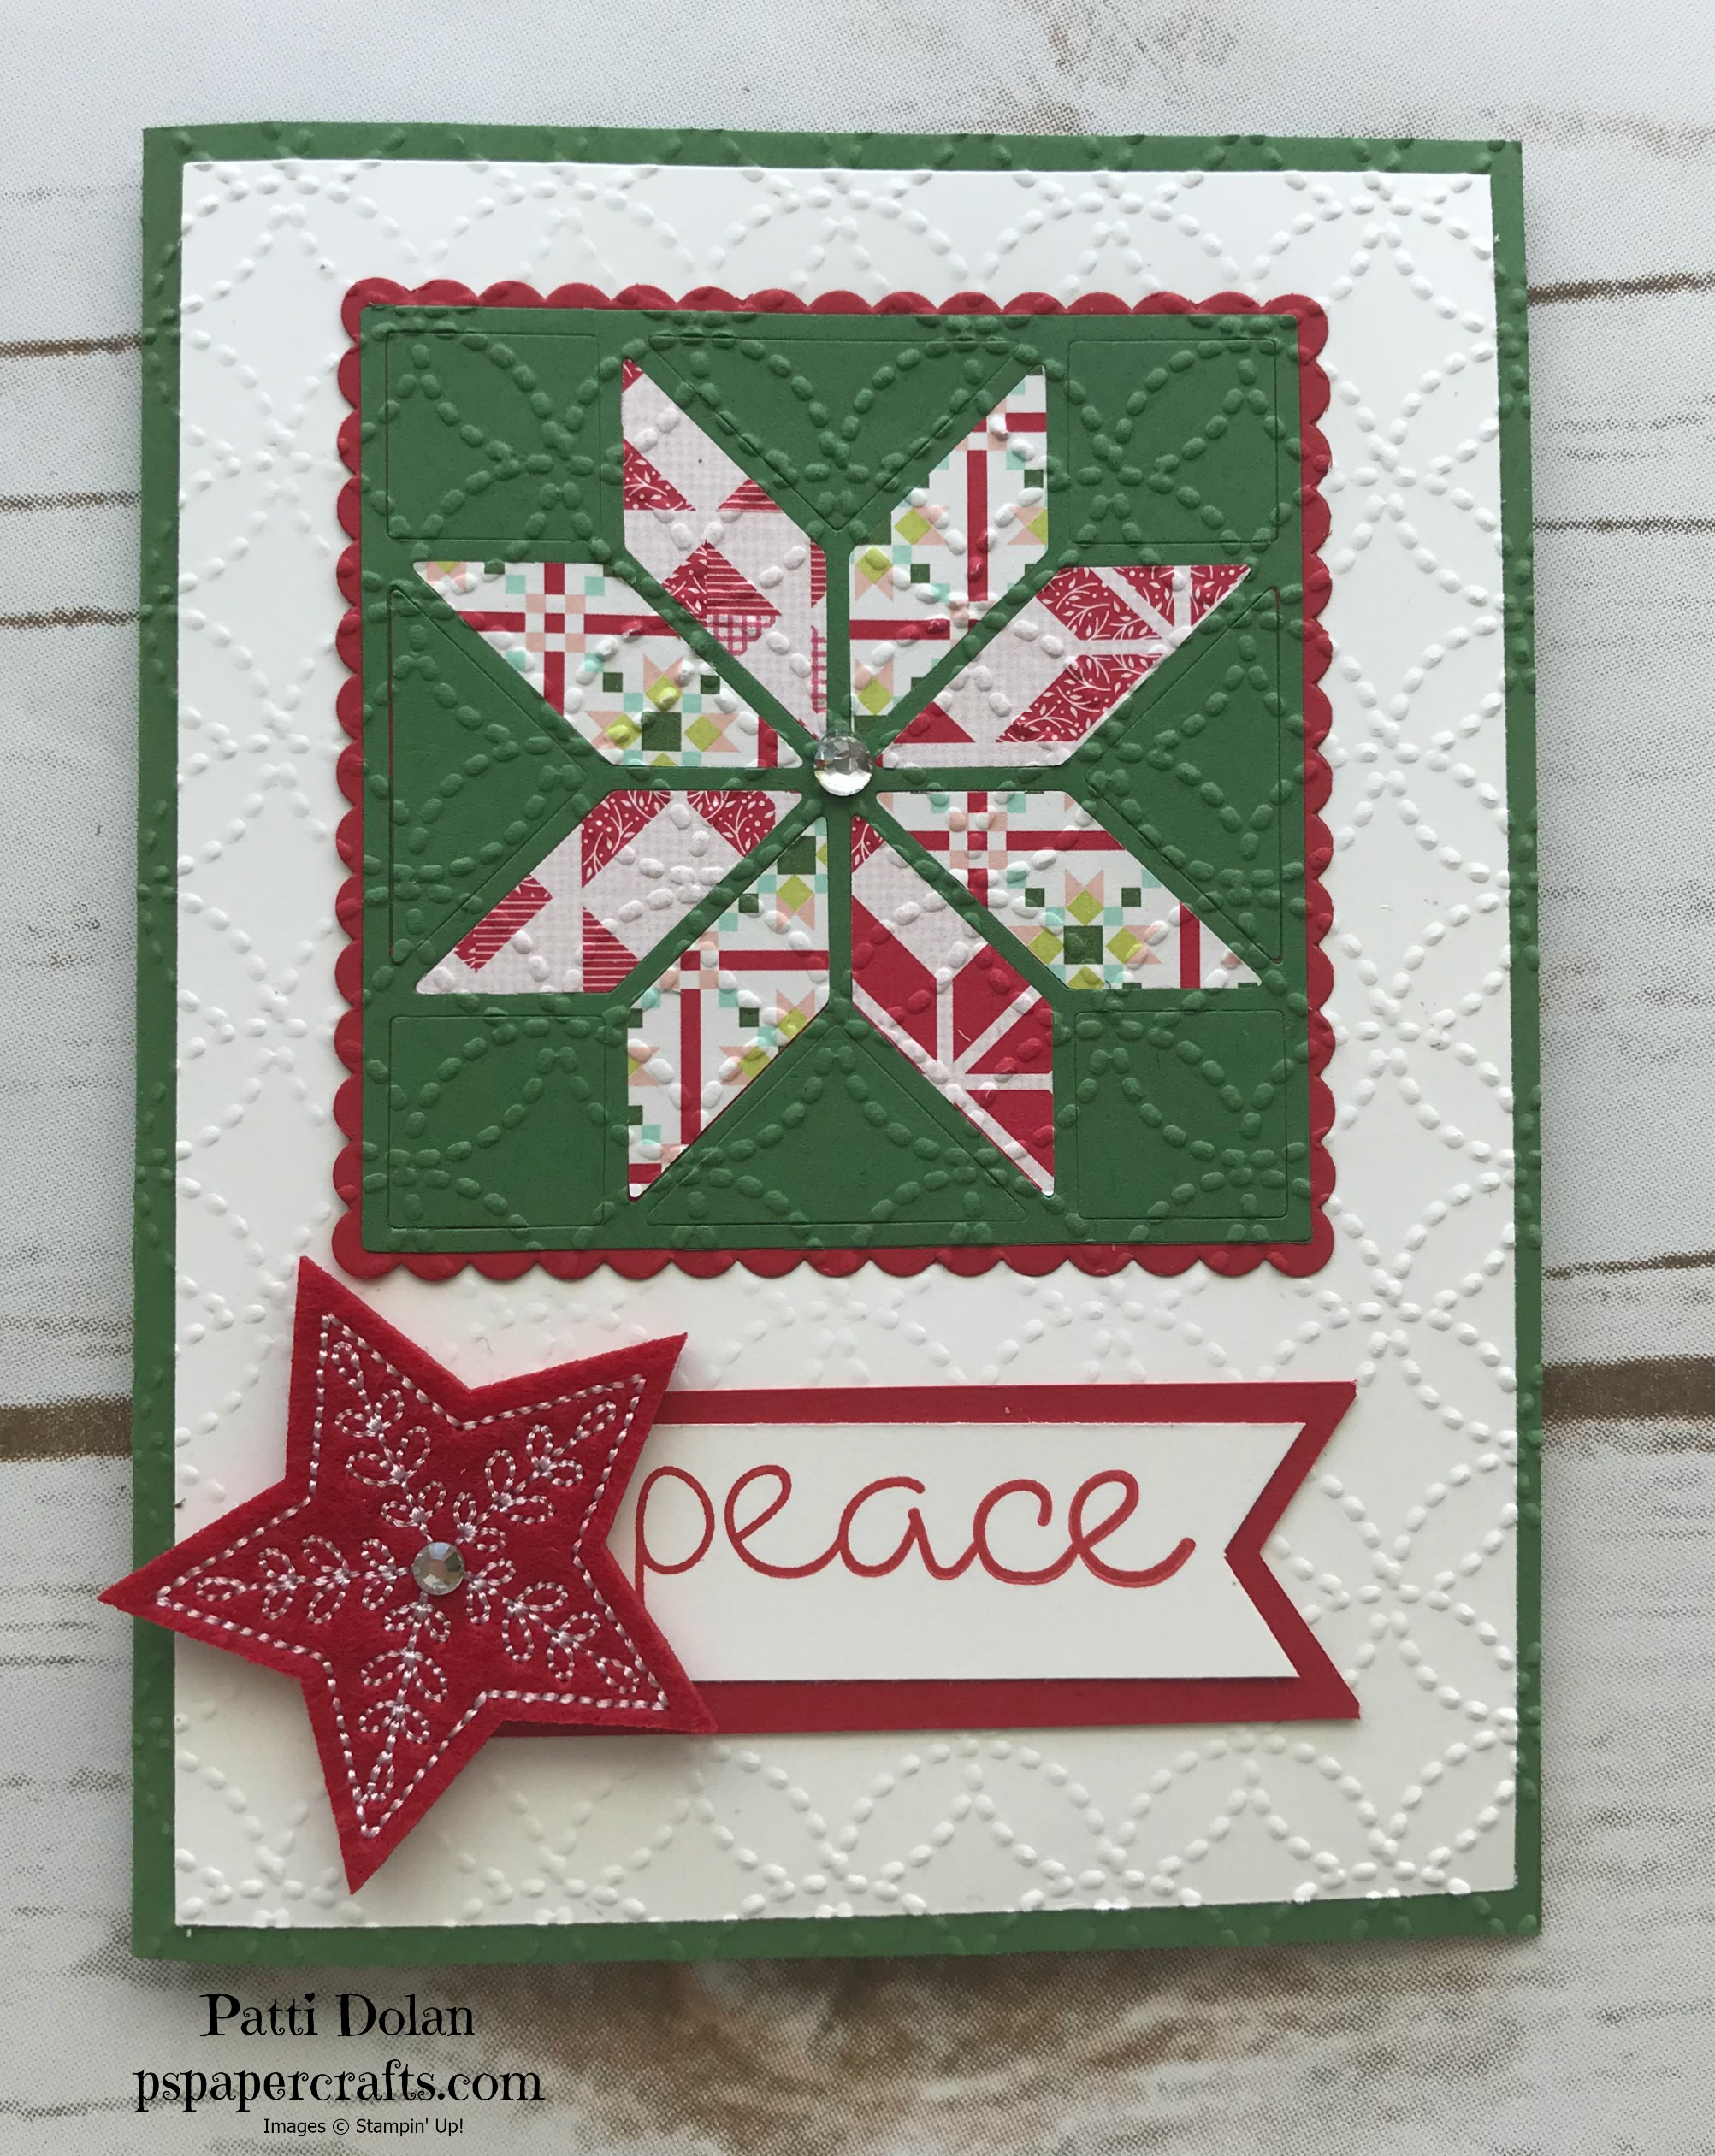 I used a Garden Green card base and the Real Red sentiment with the Star embellishment.